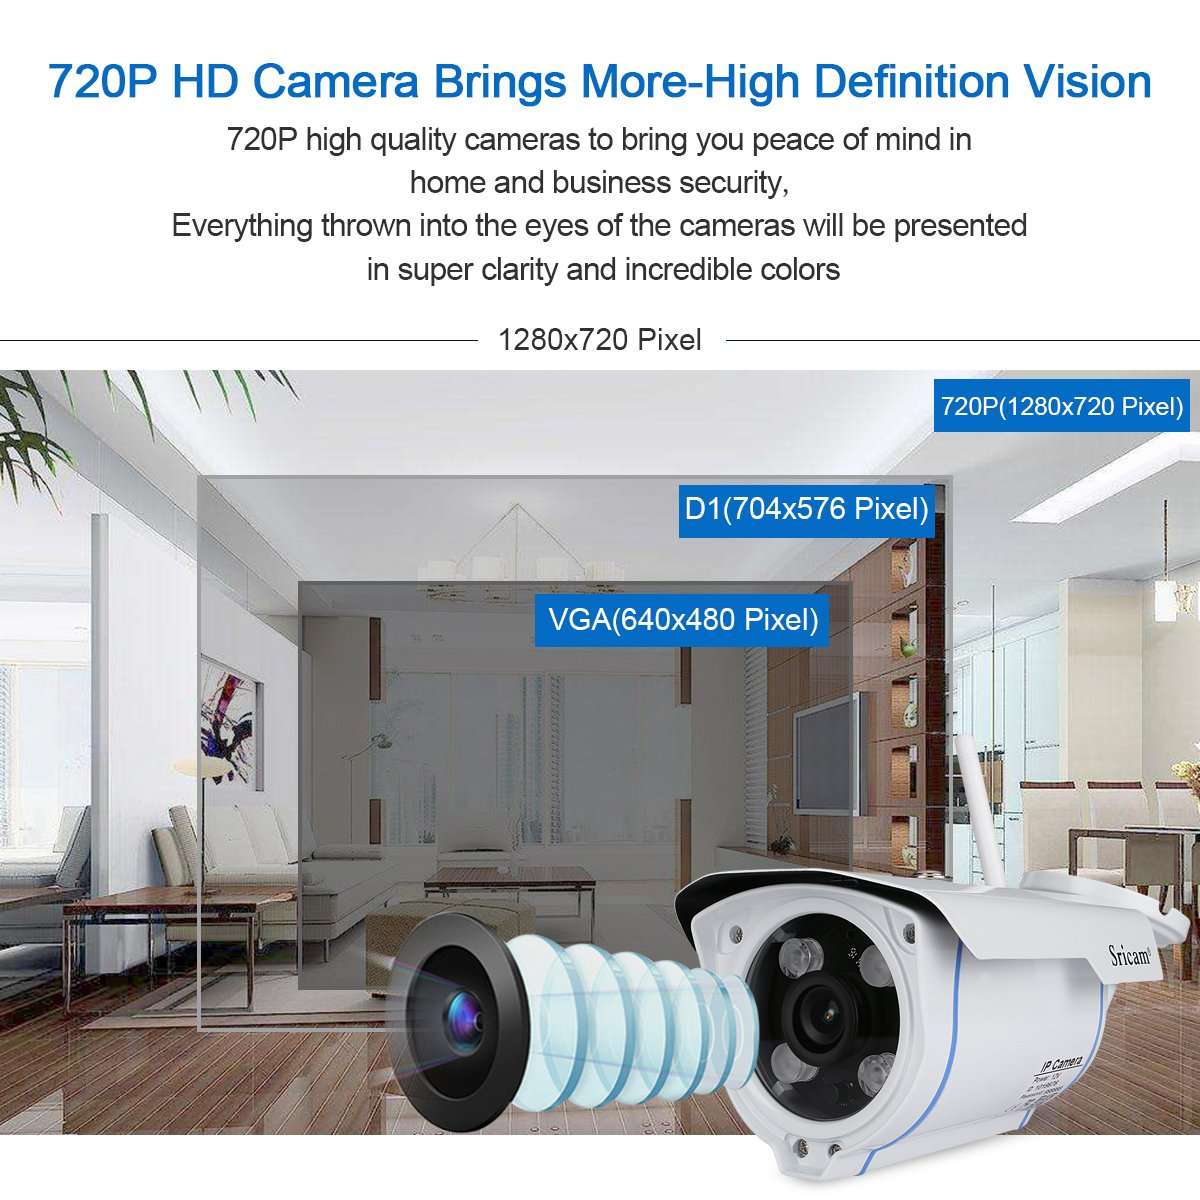 Sricam Wireless IP Camera 720P Outdoor Security Camera H.264 ONVIF IR-CUT with Automatic Night Vision Support IOS and Android System/Remote View/Motion Detection